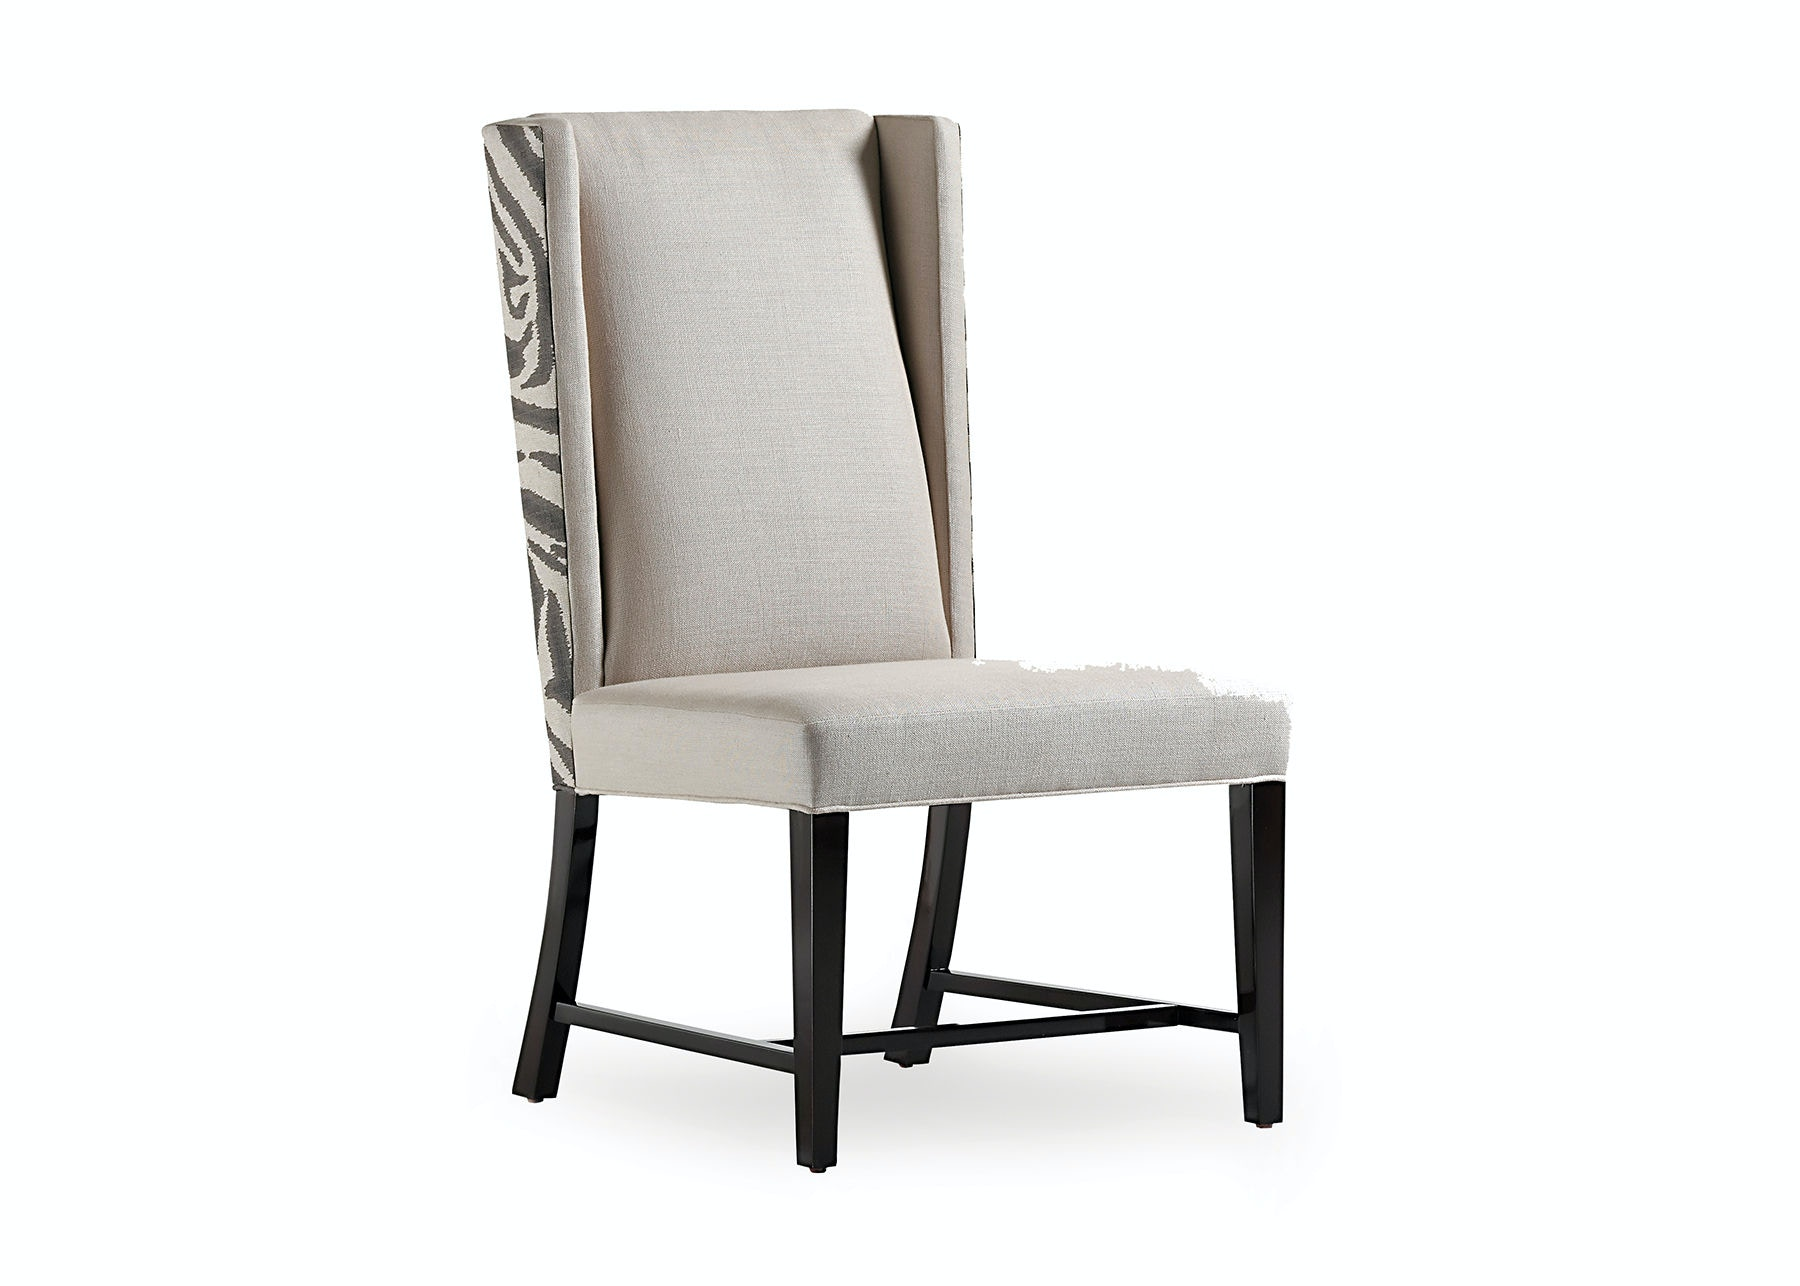 Jessica Charles Dining Room Frazier Armless Dining Chair